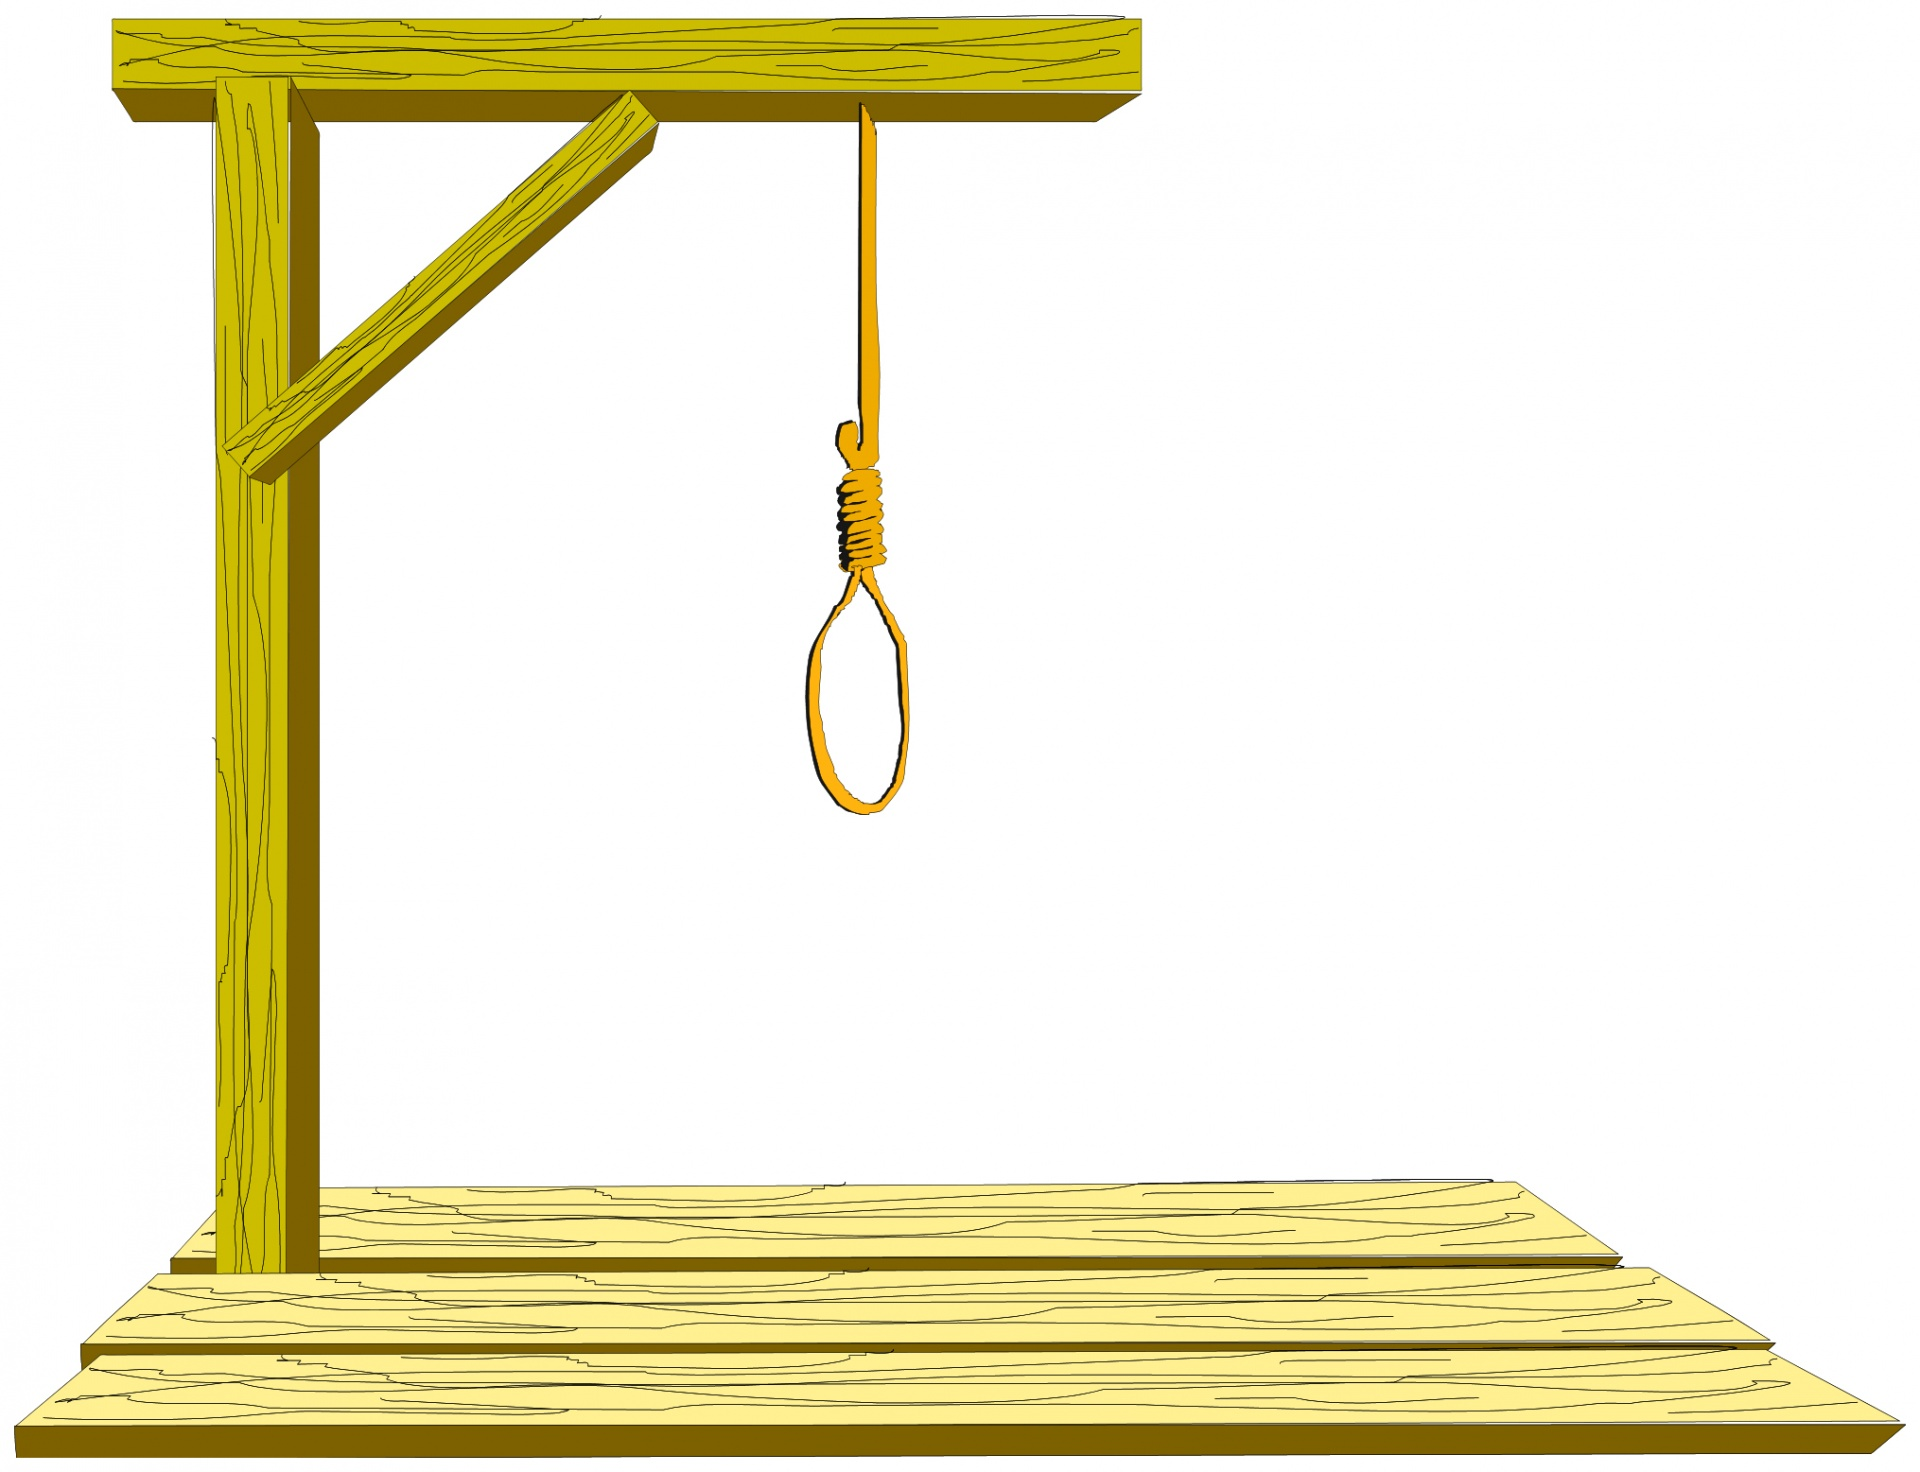 Gallows Free Stock Photo.